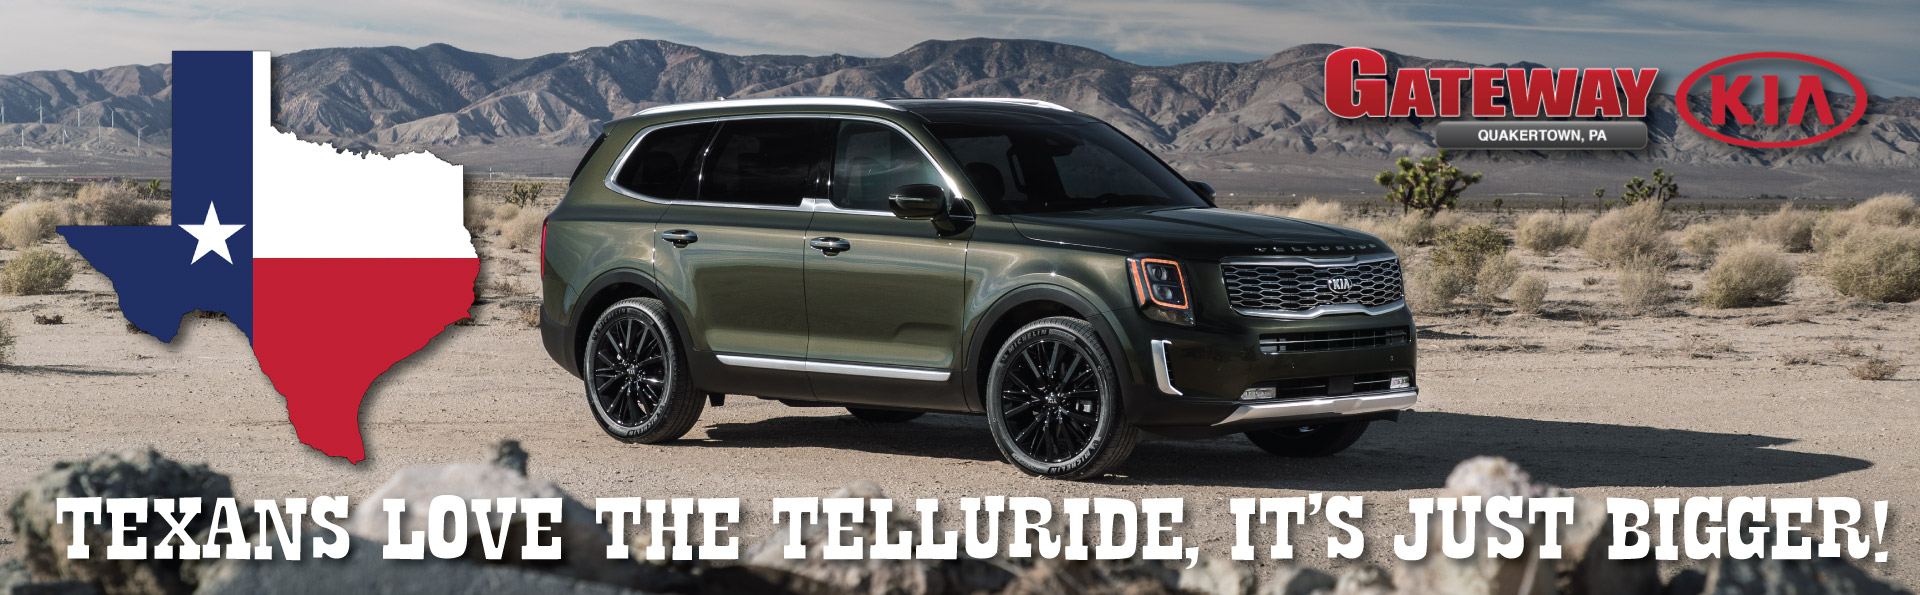 Texans Love 2020 Kia Telluride, it's Just Bigger!